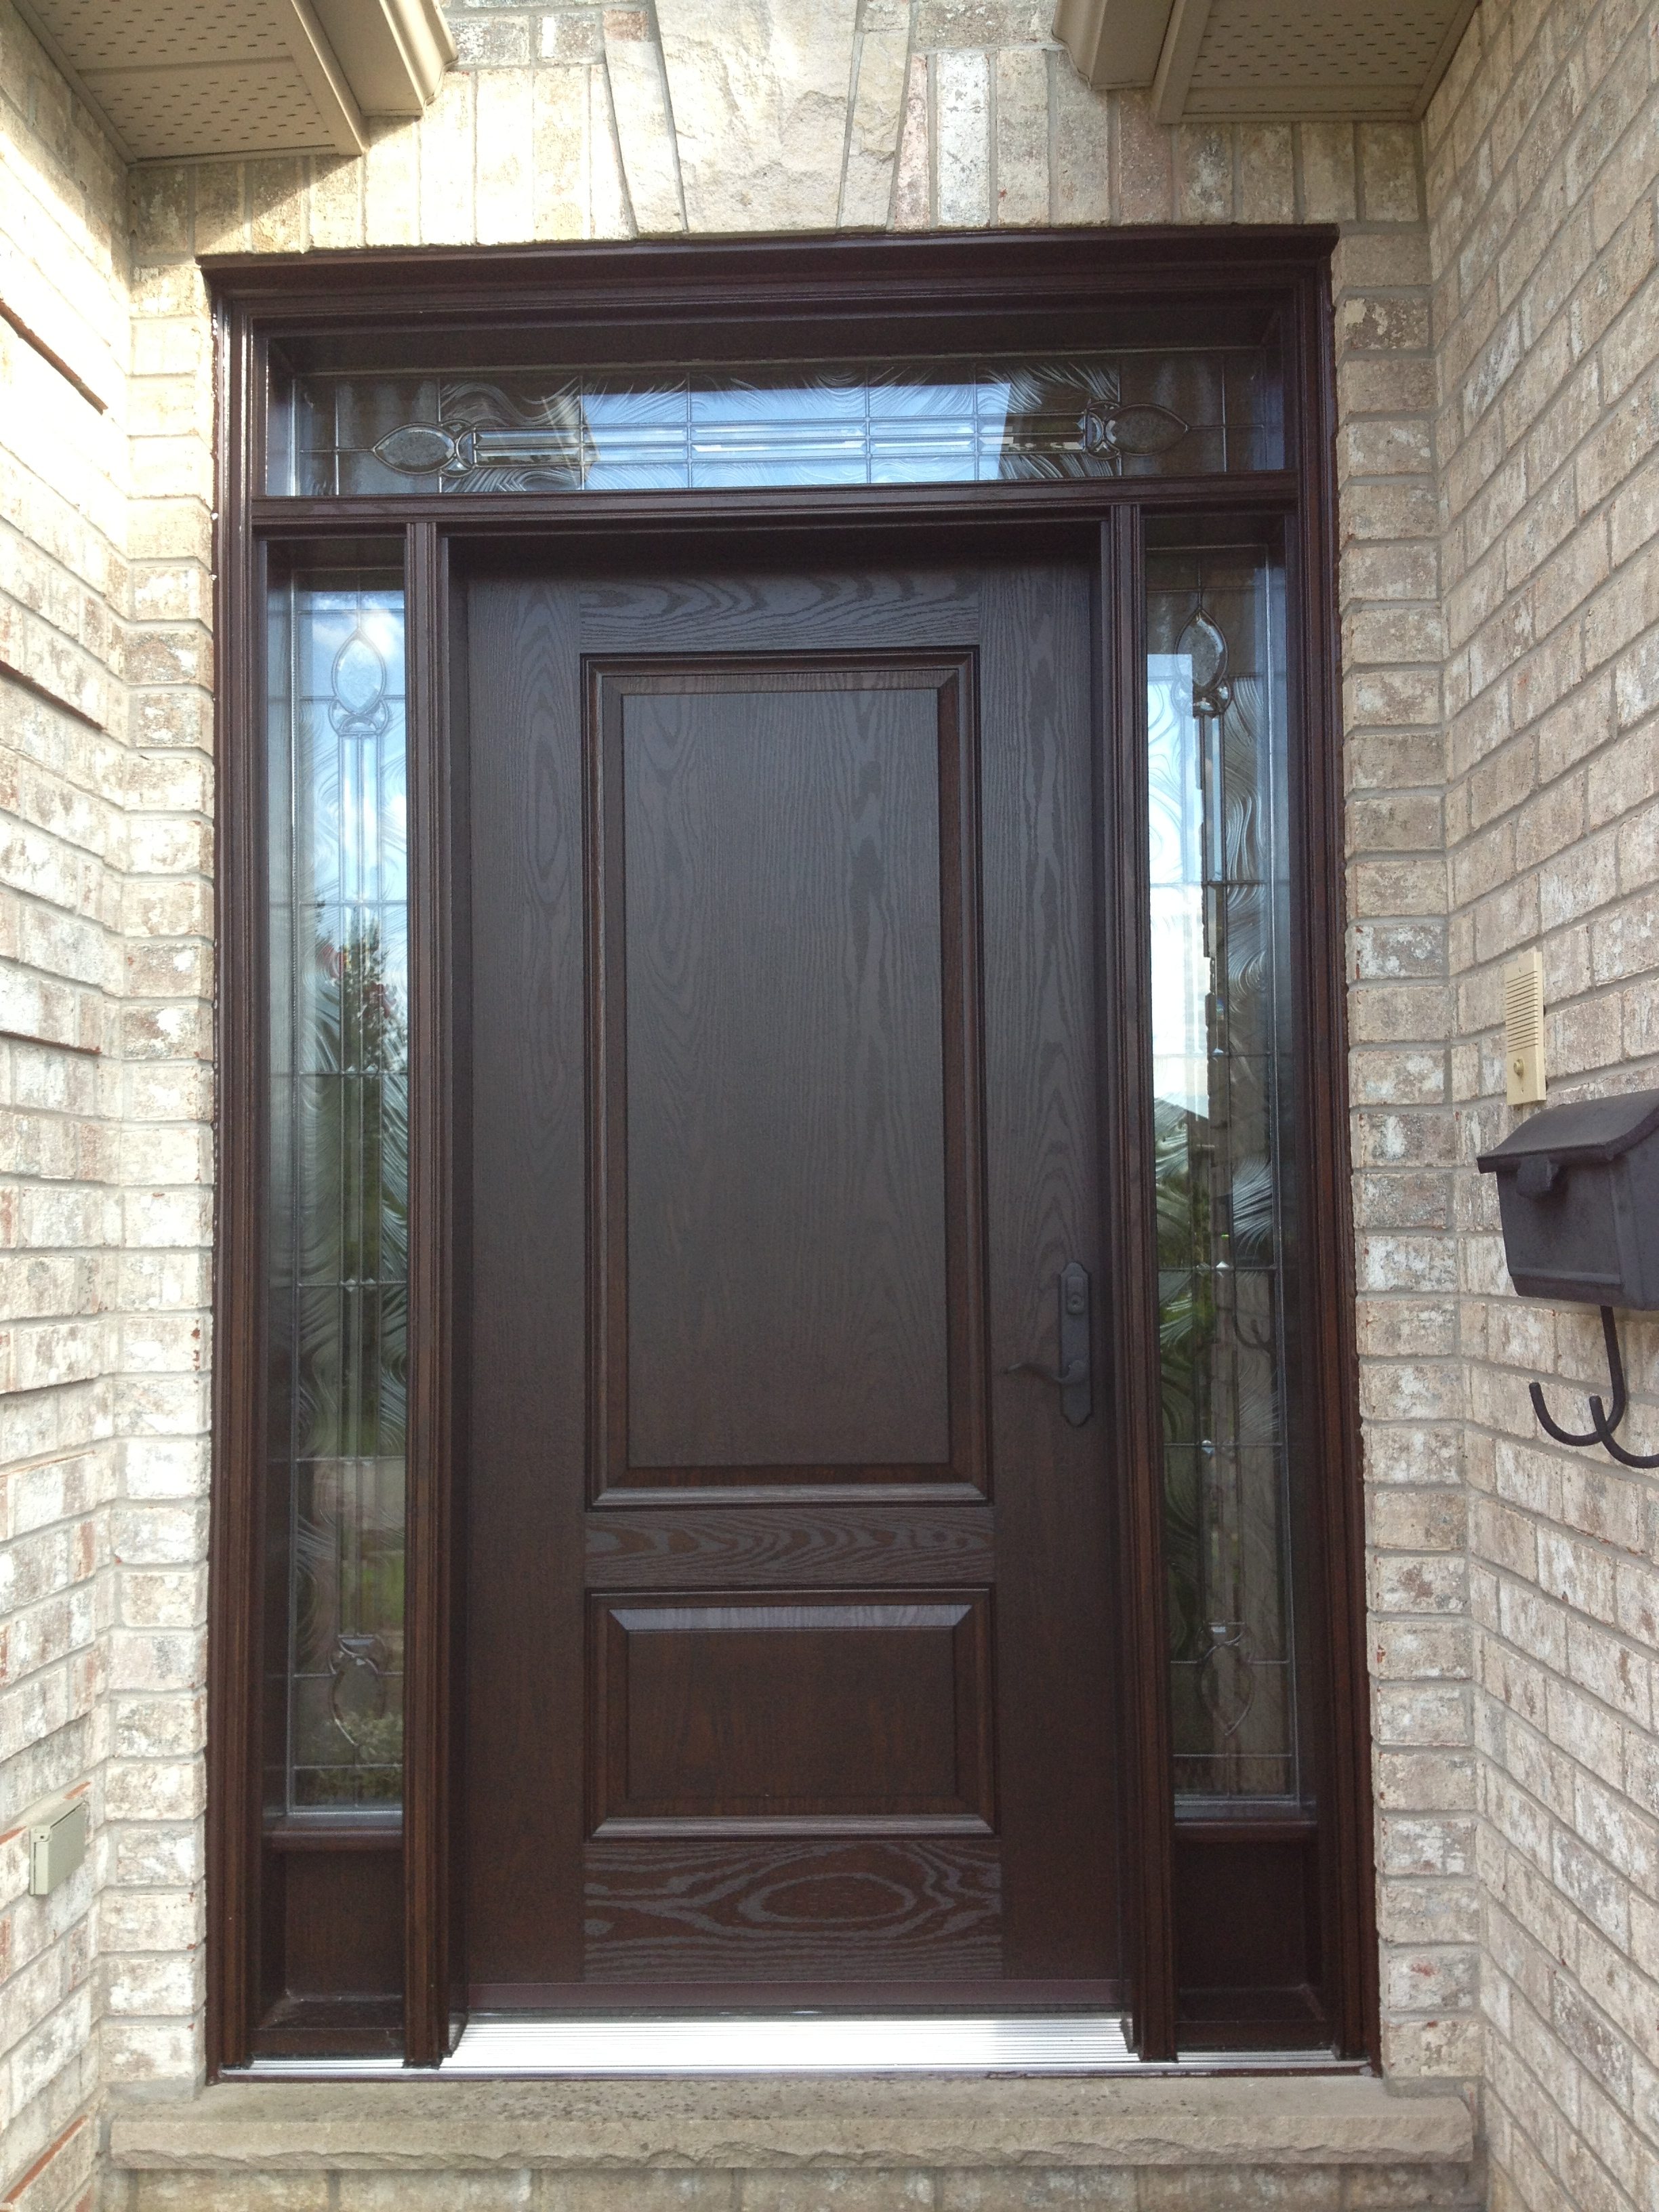 Fiberglass door with decorative sidelight glass and transom